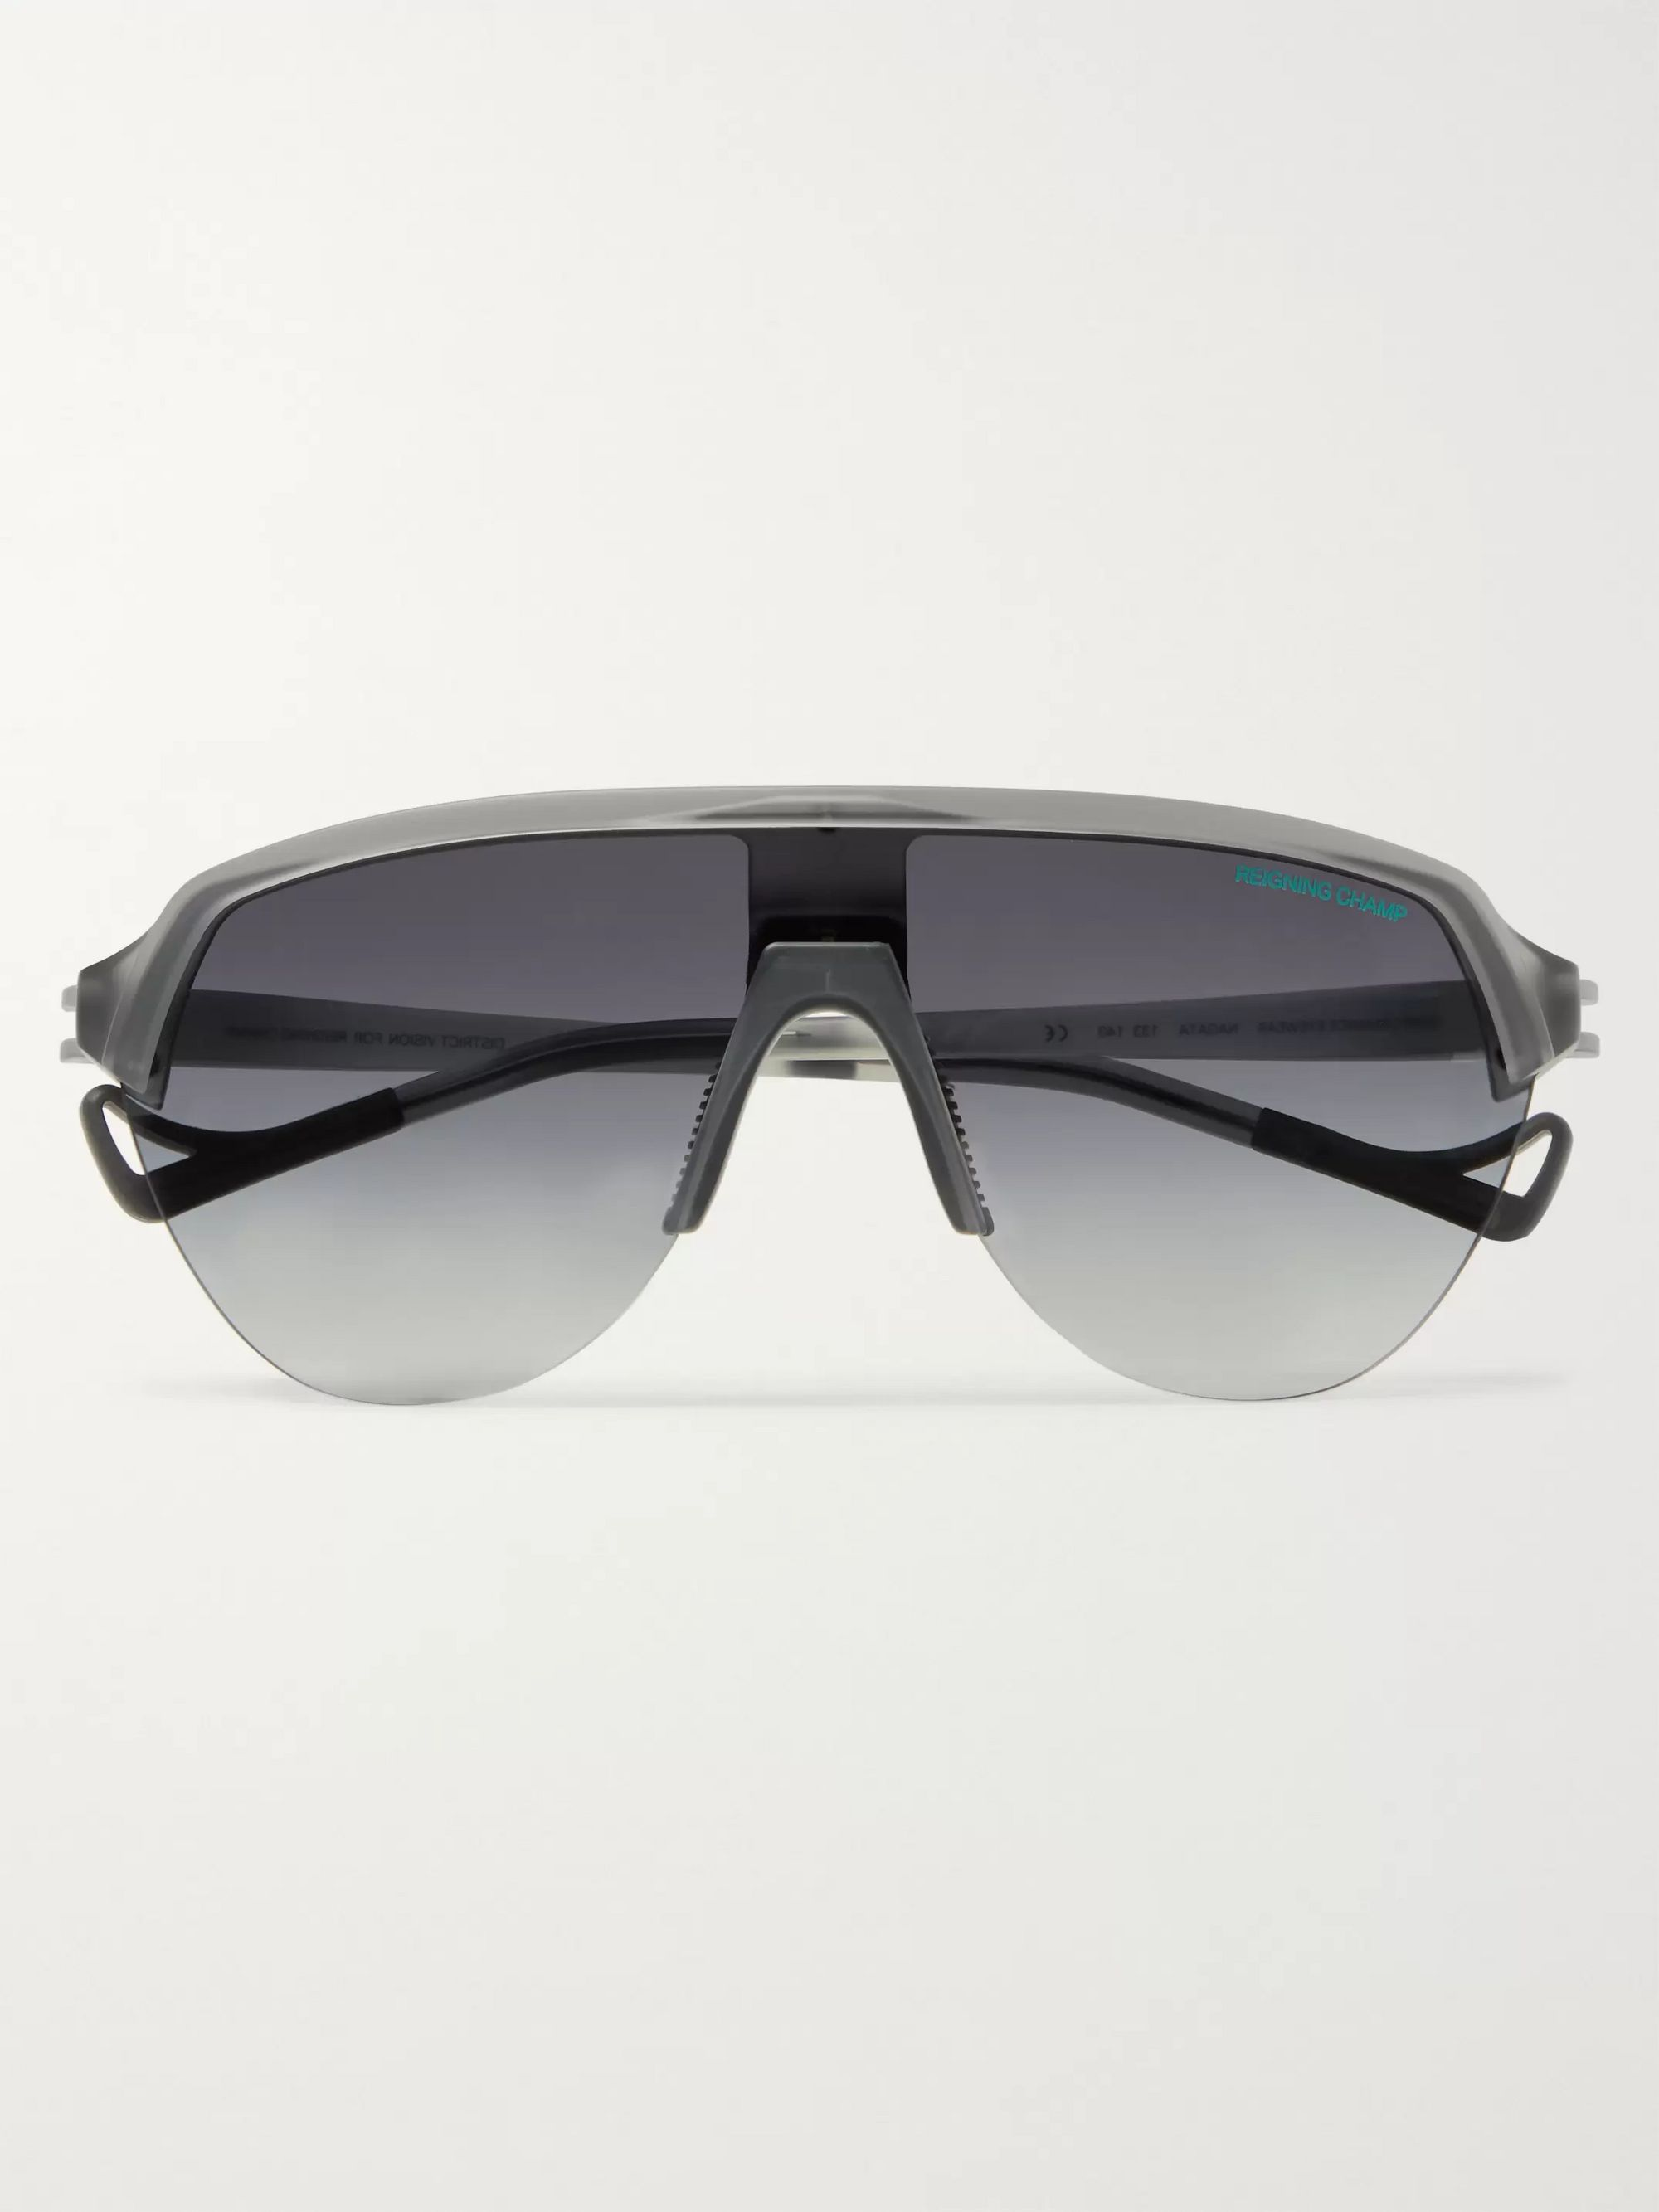 DISTRICT VISION + Reigning Champ Nagata Speed Blade Aviator-Style Acetate Sunglasses